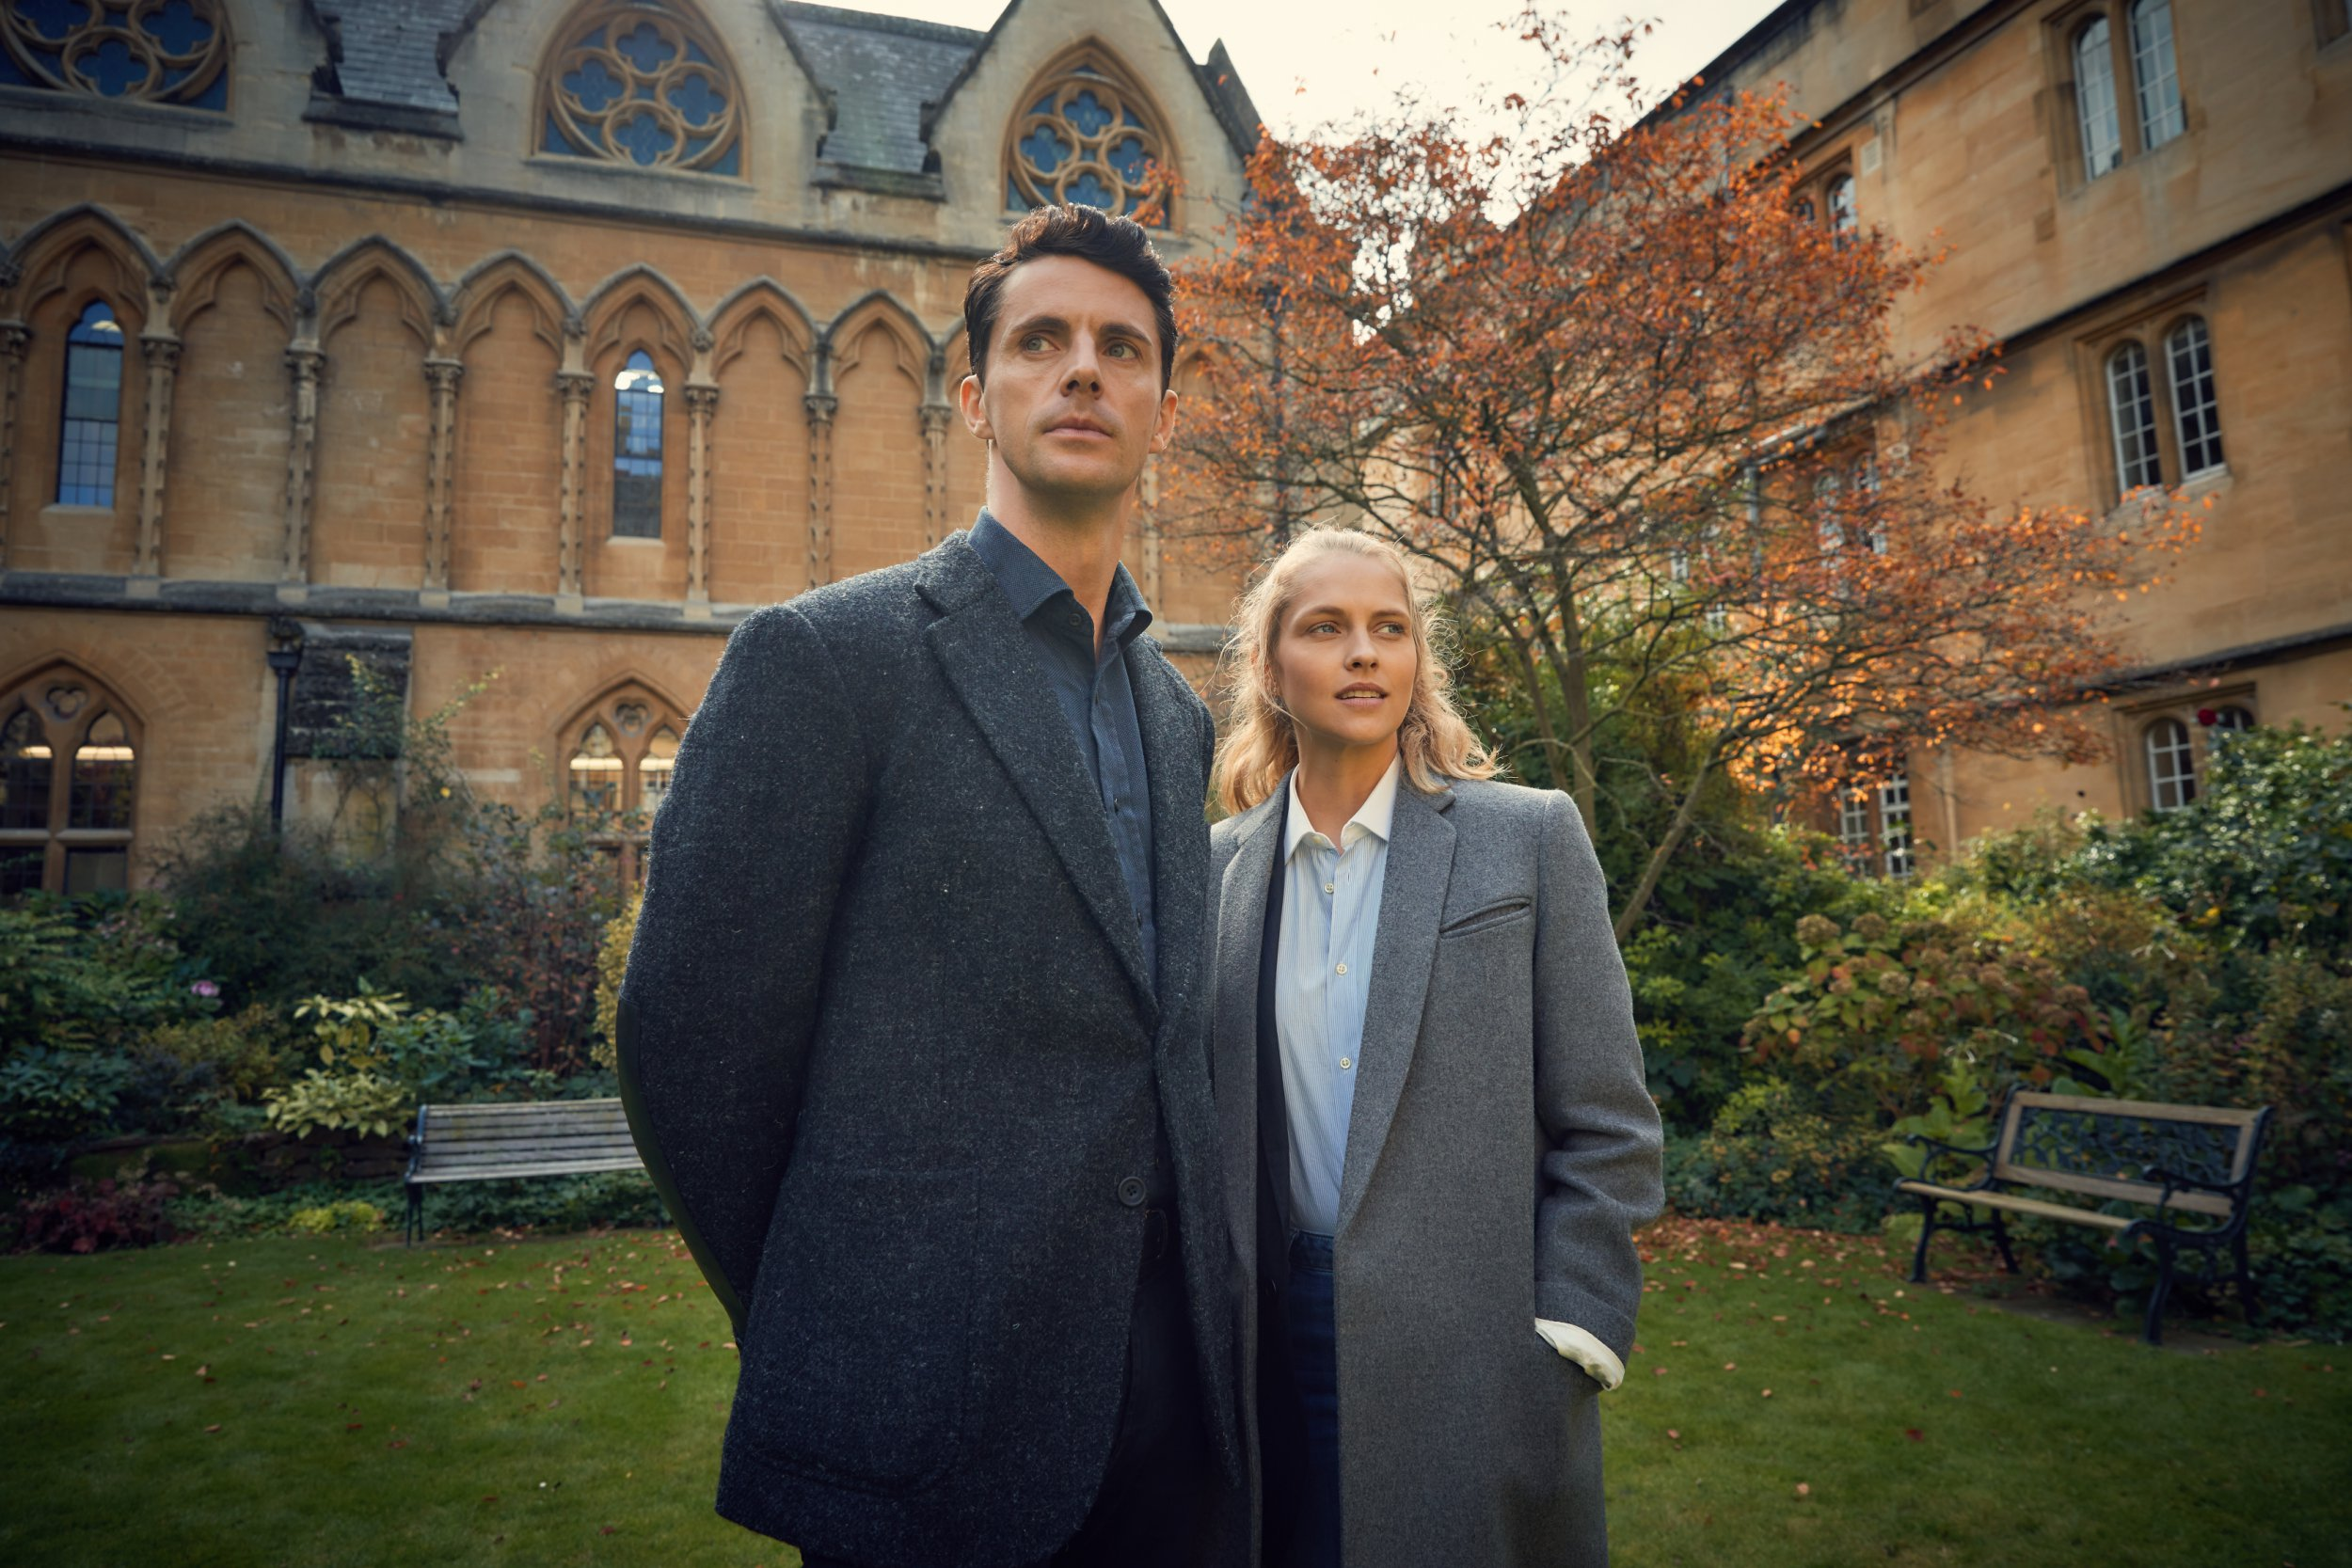 A Discovery Of Witches episode one review: Matthew Goode steals the show as a seductive vampire